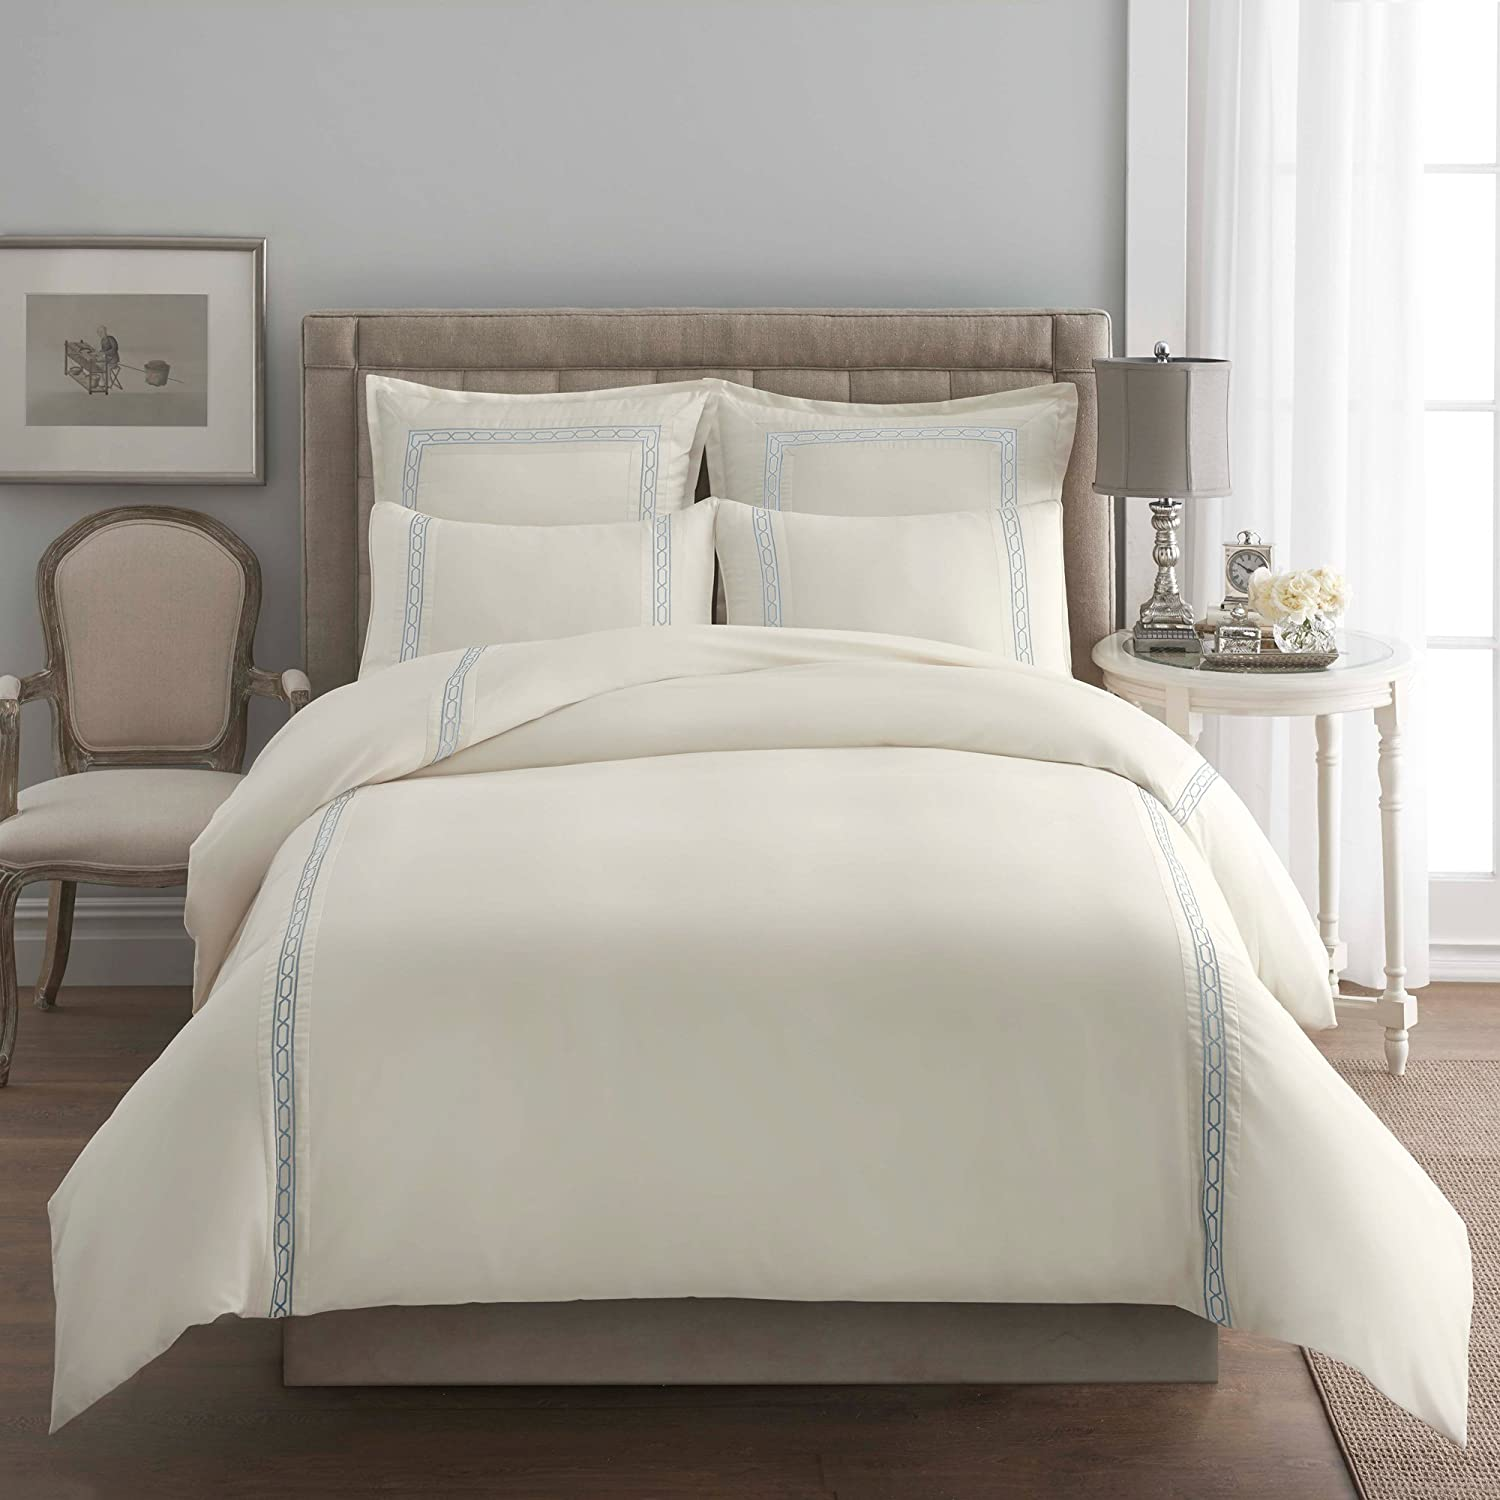 Modern Living Abyss Signature Link Embroidered Duvet, Full/Queen